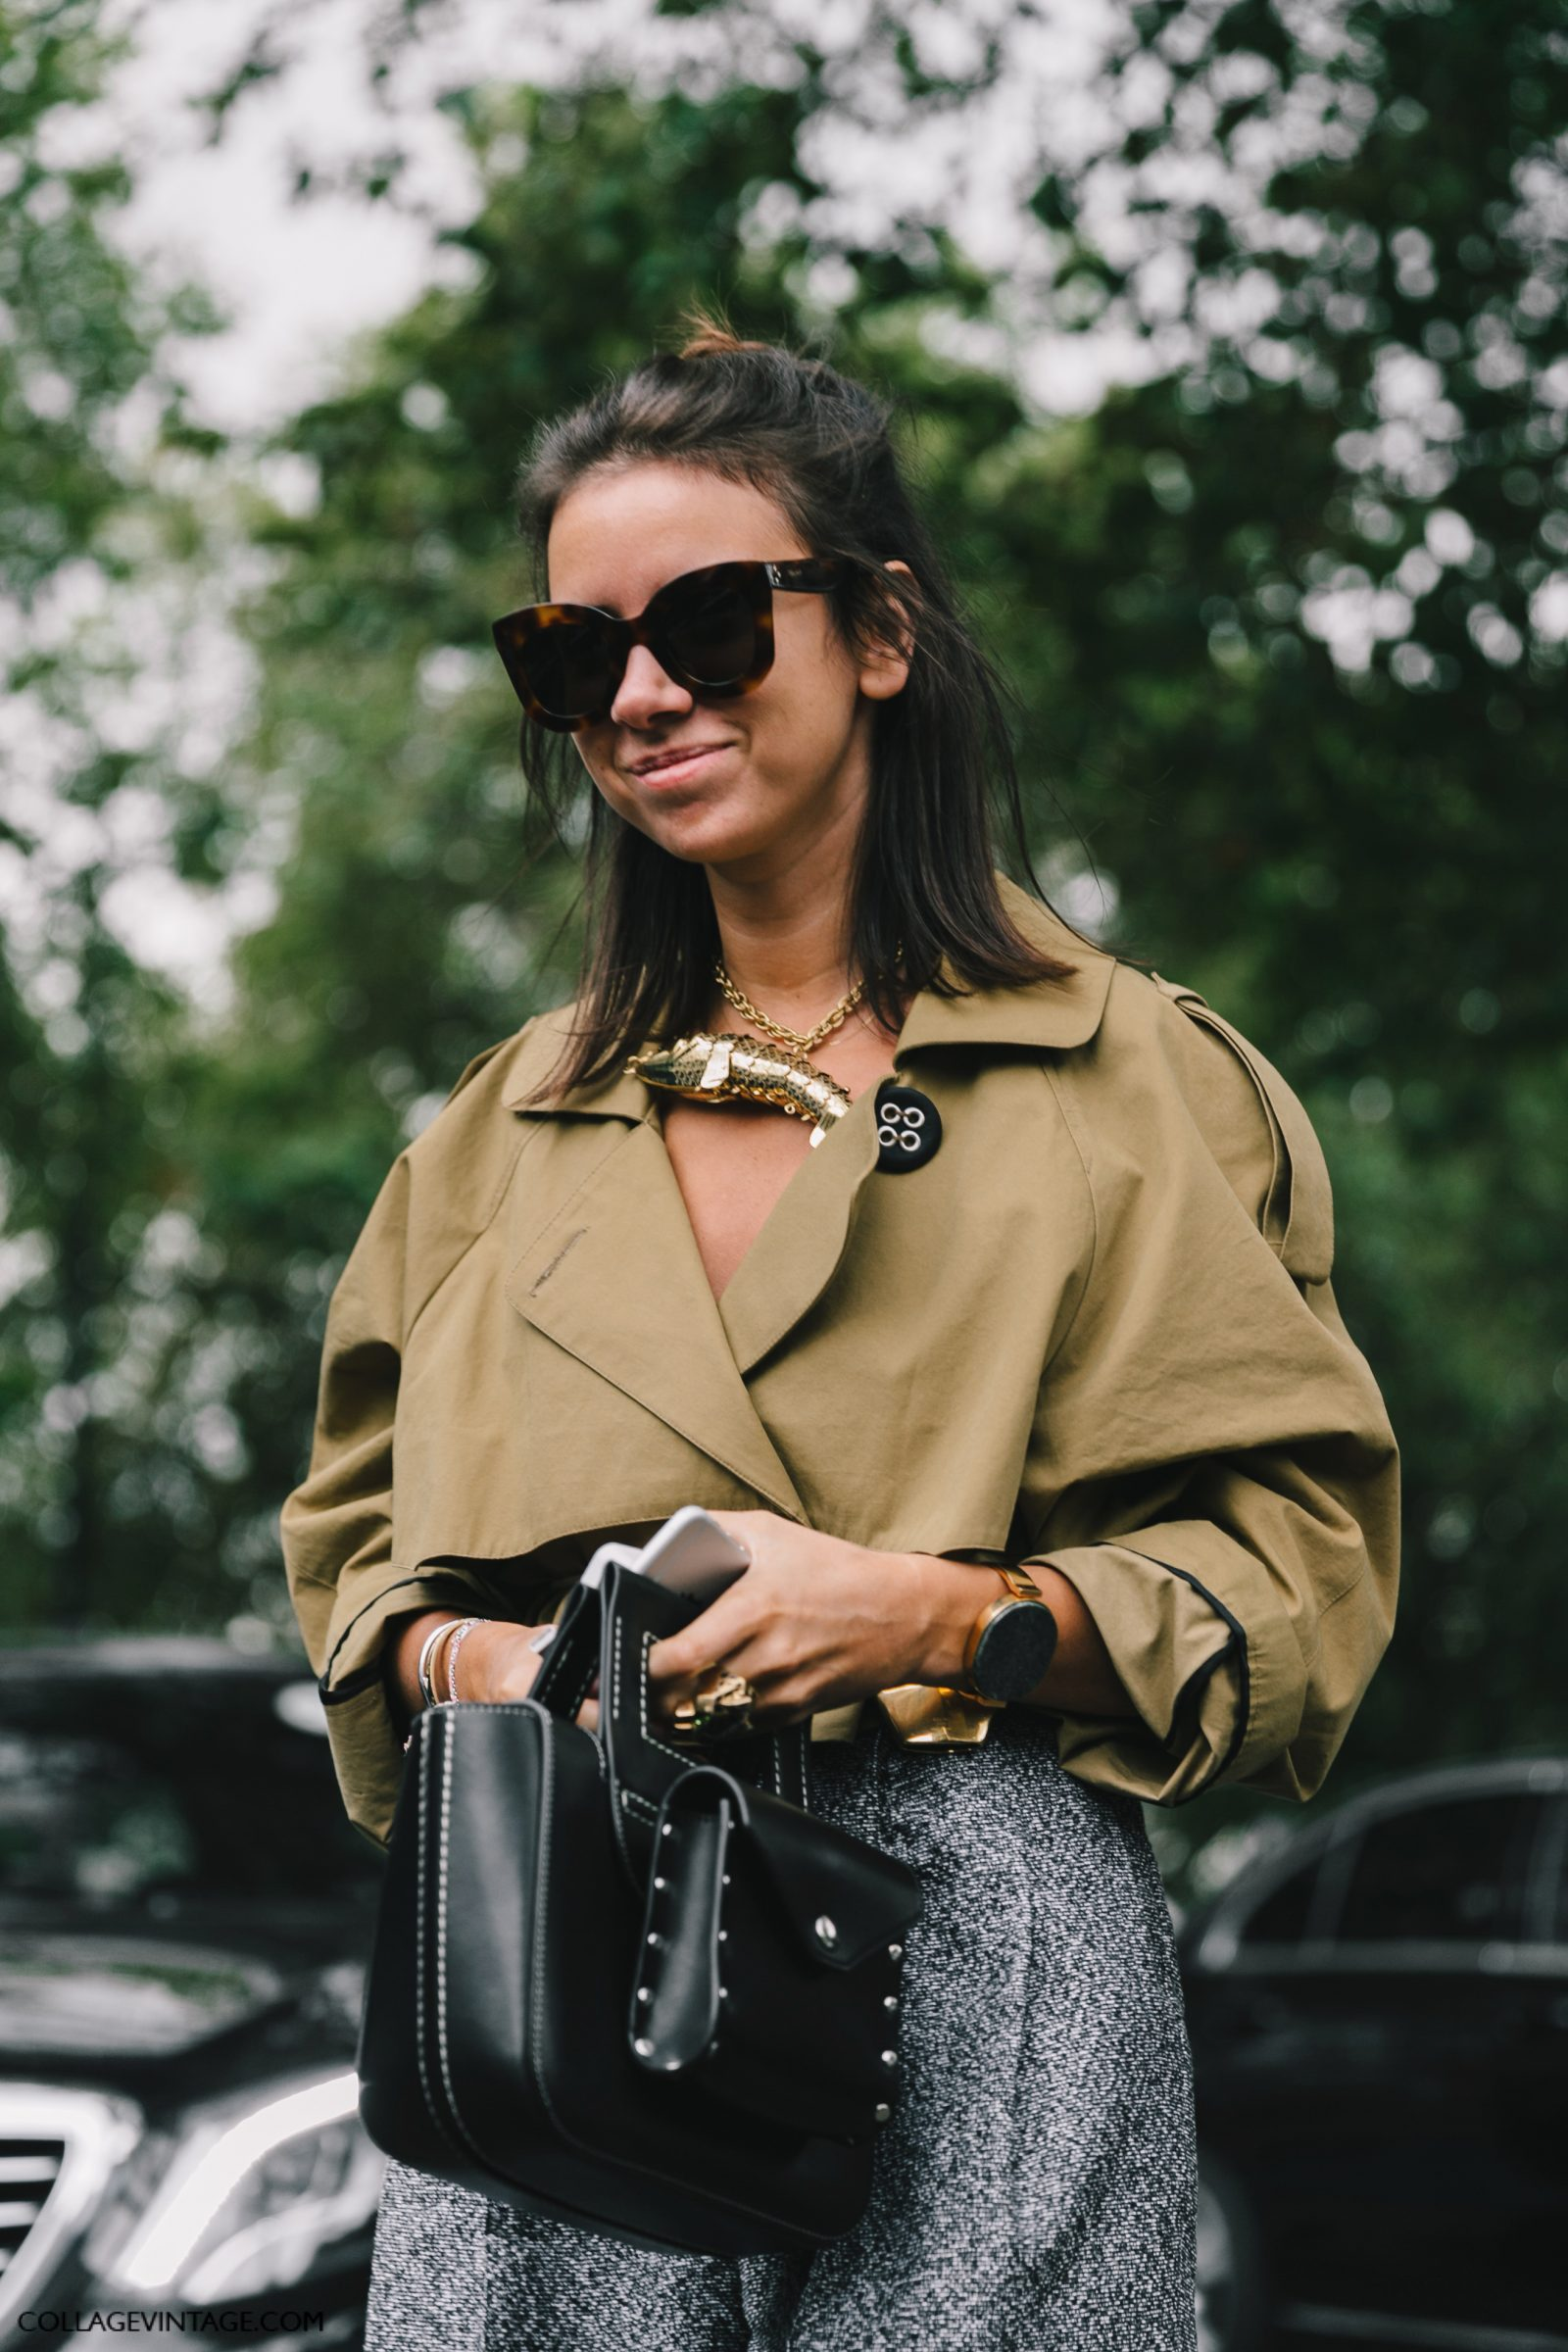 lfw-london_fashion_week_ss17-street_style-outfits-collage_vintage-vintage-roksanda-christopher_kane-joseph-141